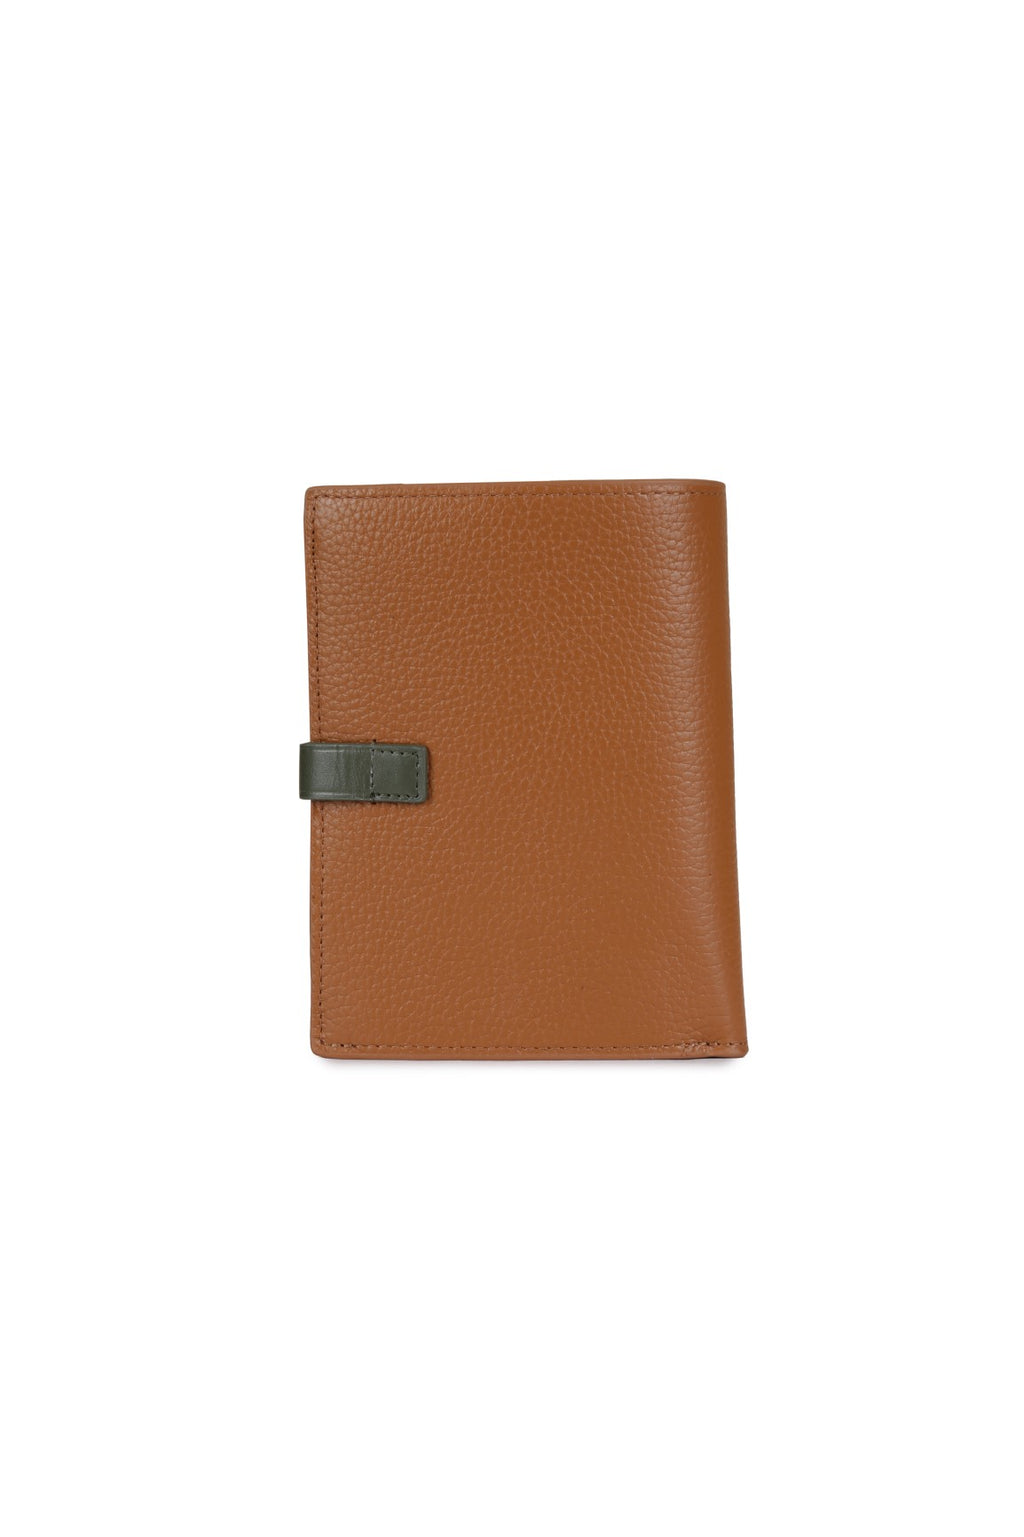 DIYA - Leather Two-Tone Wallet - Tan